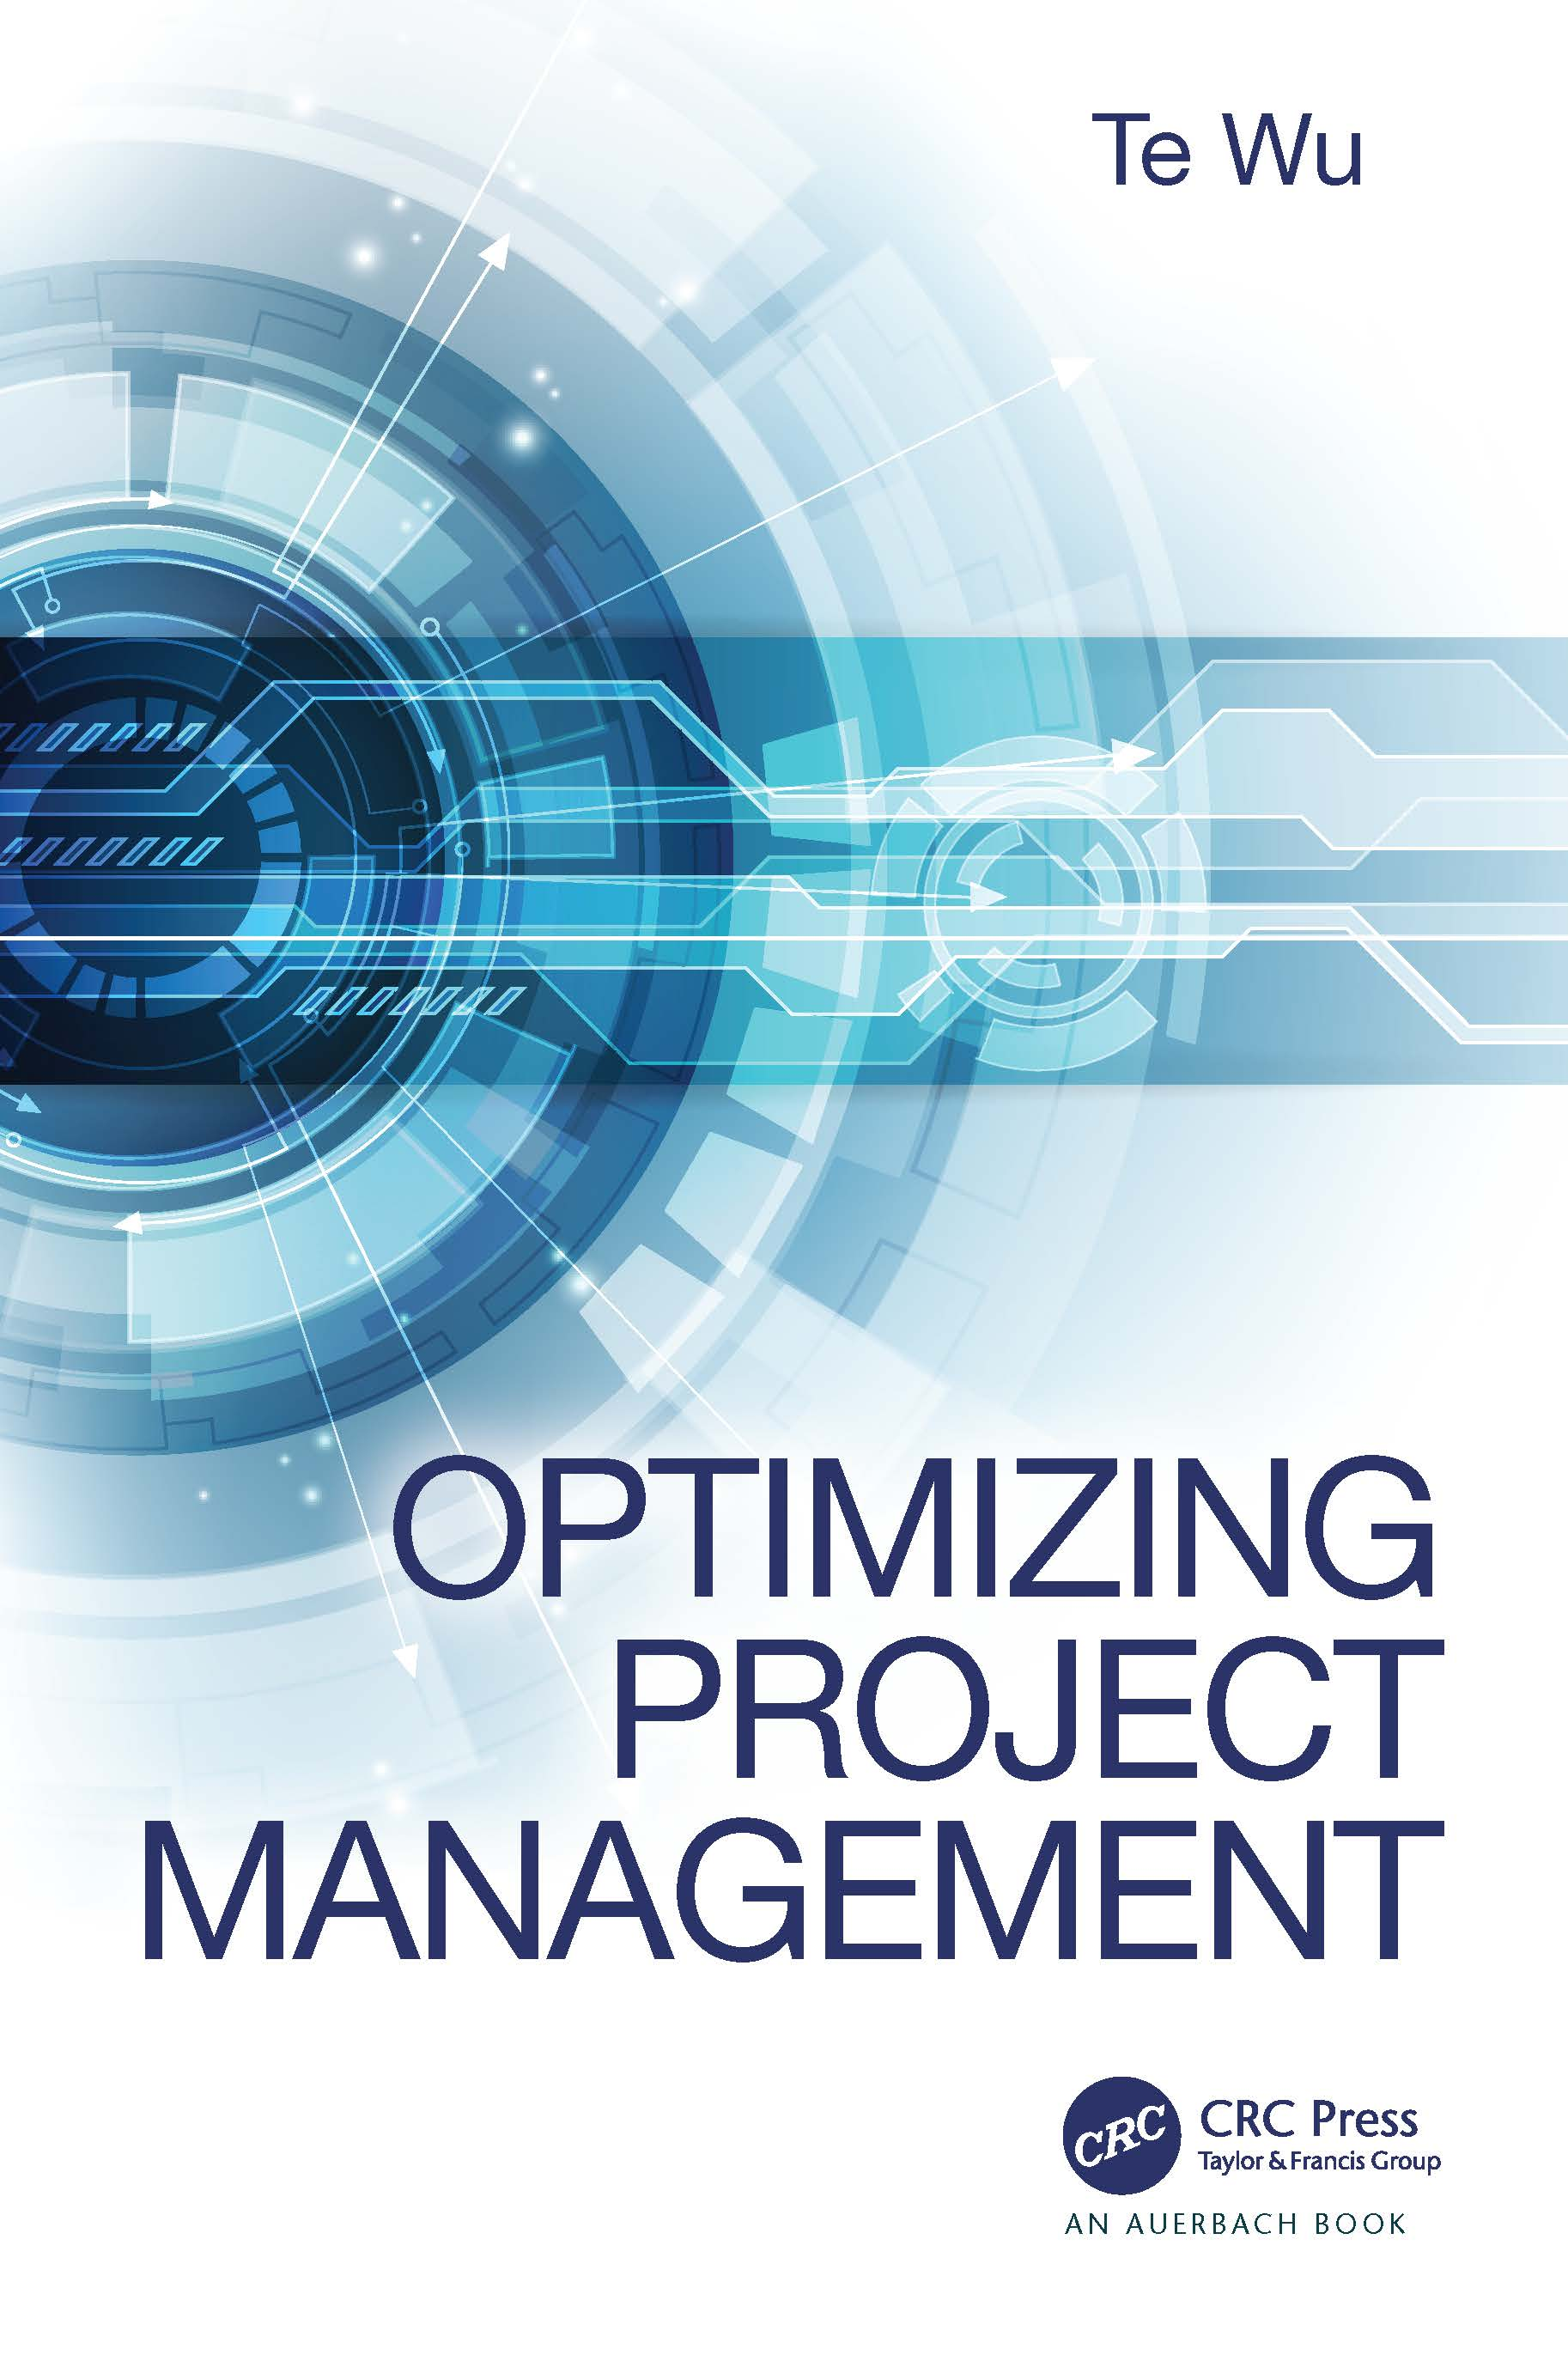 Optimizing Project Management book cover